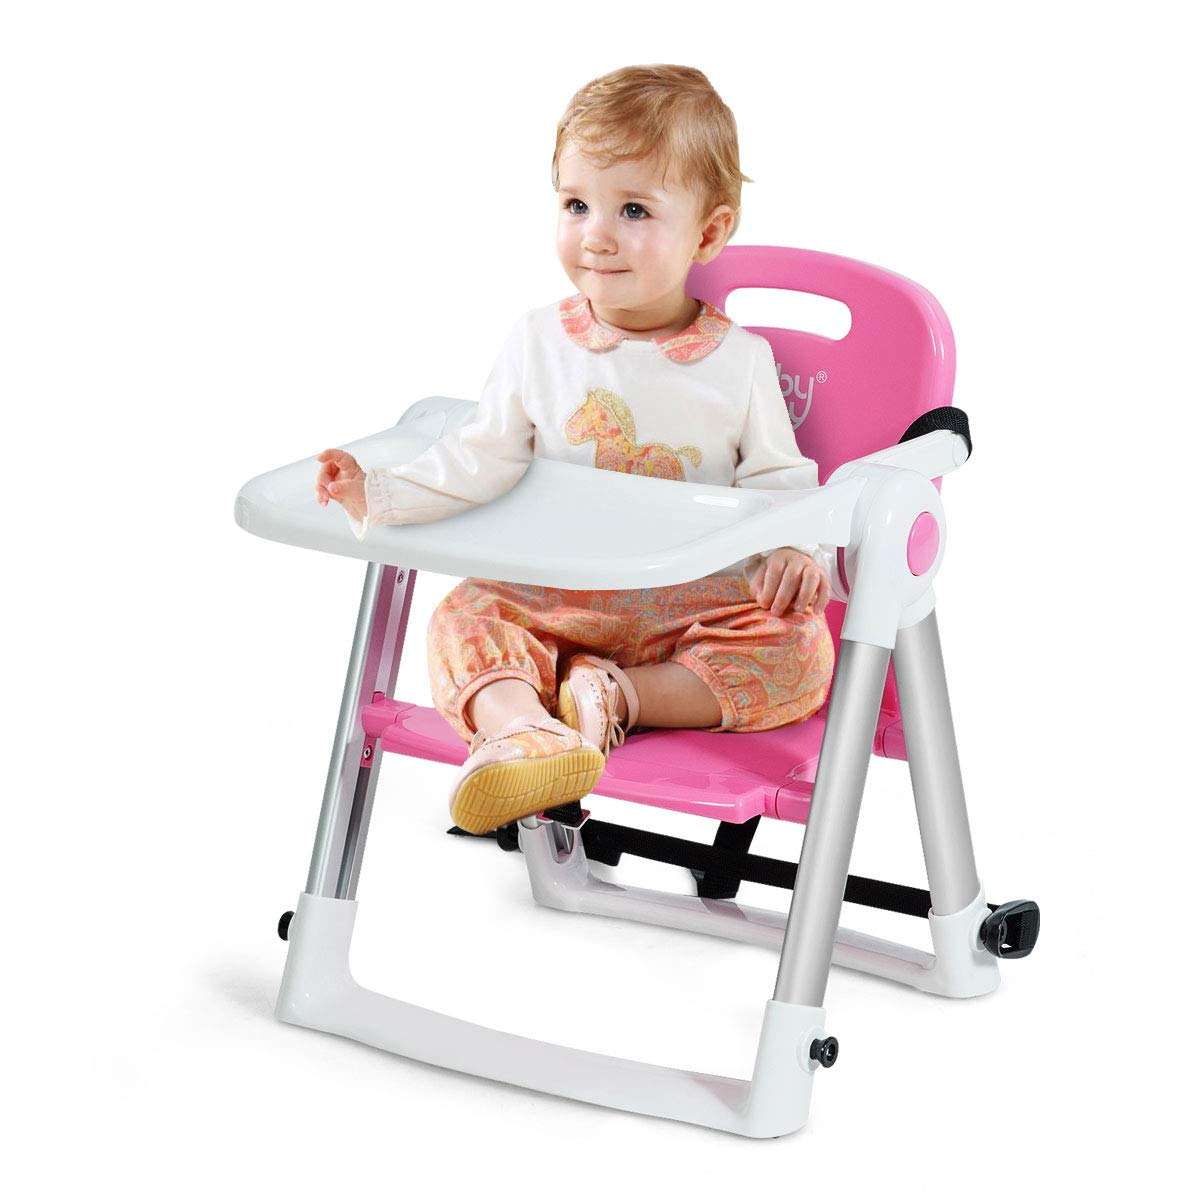 Portable Baby Dinning Booster Seat Travel High Chair Light Weight Chairs 6A